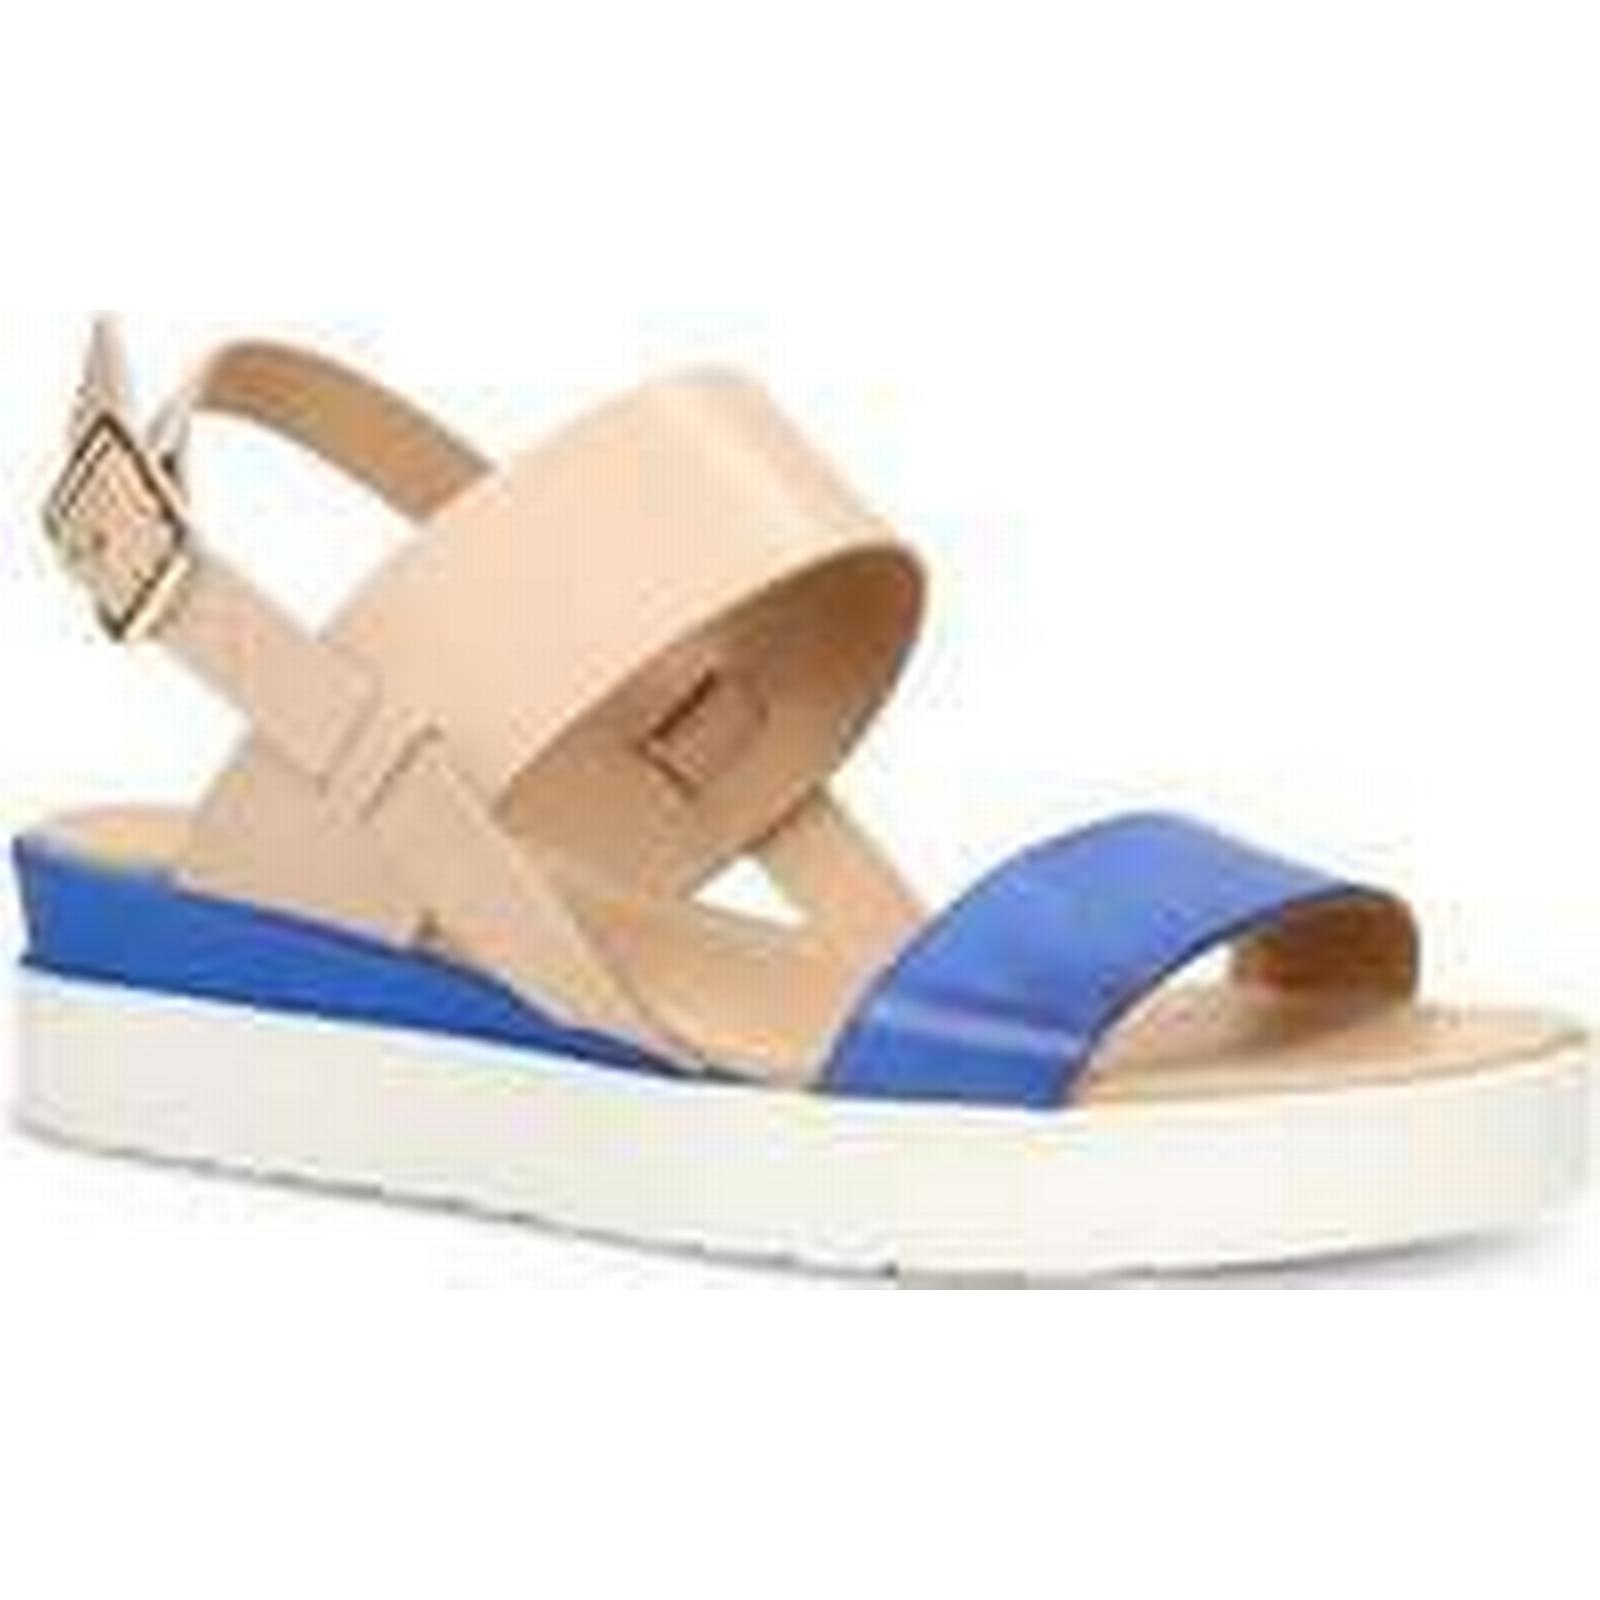 Spartoo.co.uk Gino Rossi Sandals DN984M Spring/Summer Blue / Beige Woman Spring/Summer DN984M Collection 2018 women's Sandals in Blue 3196a0